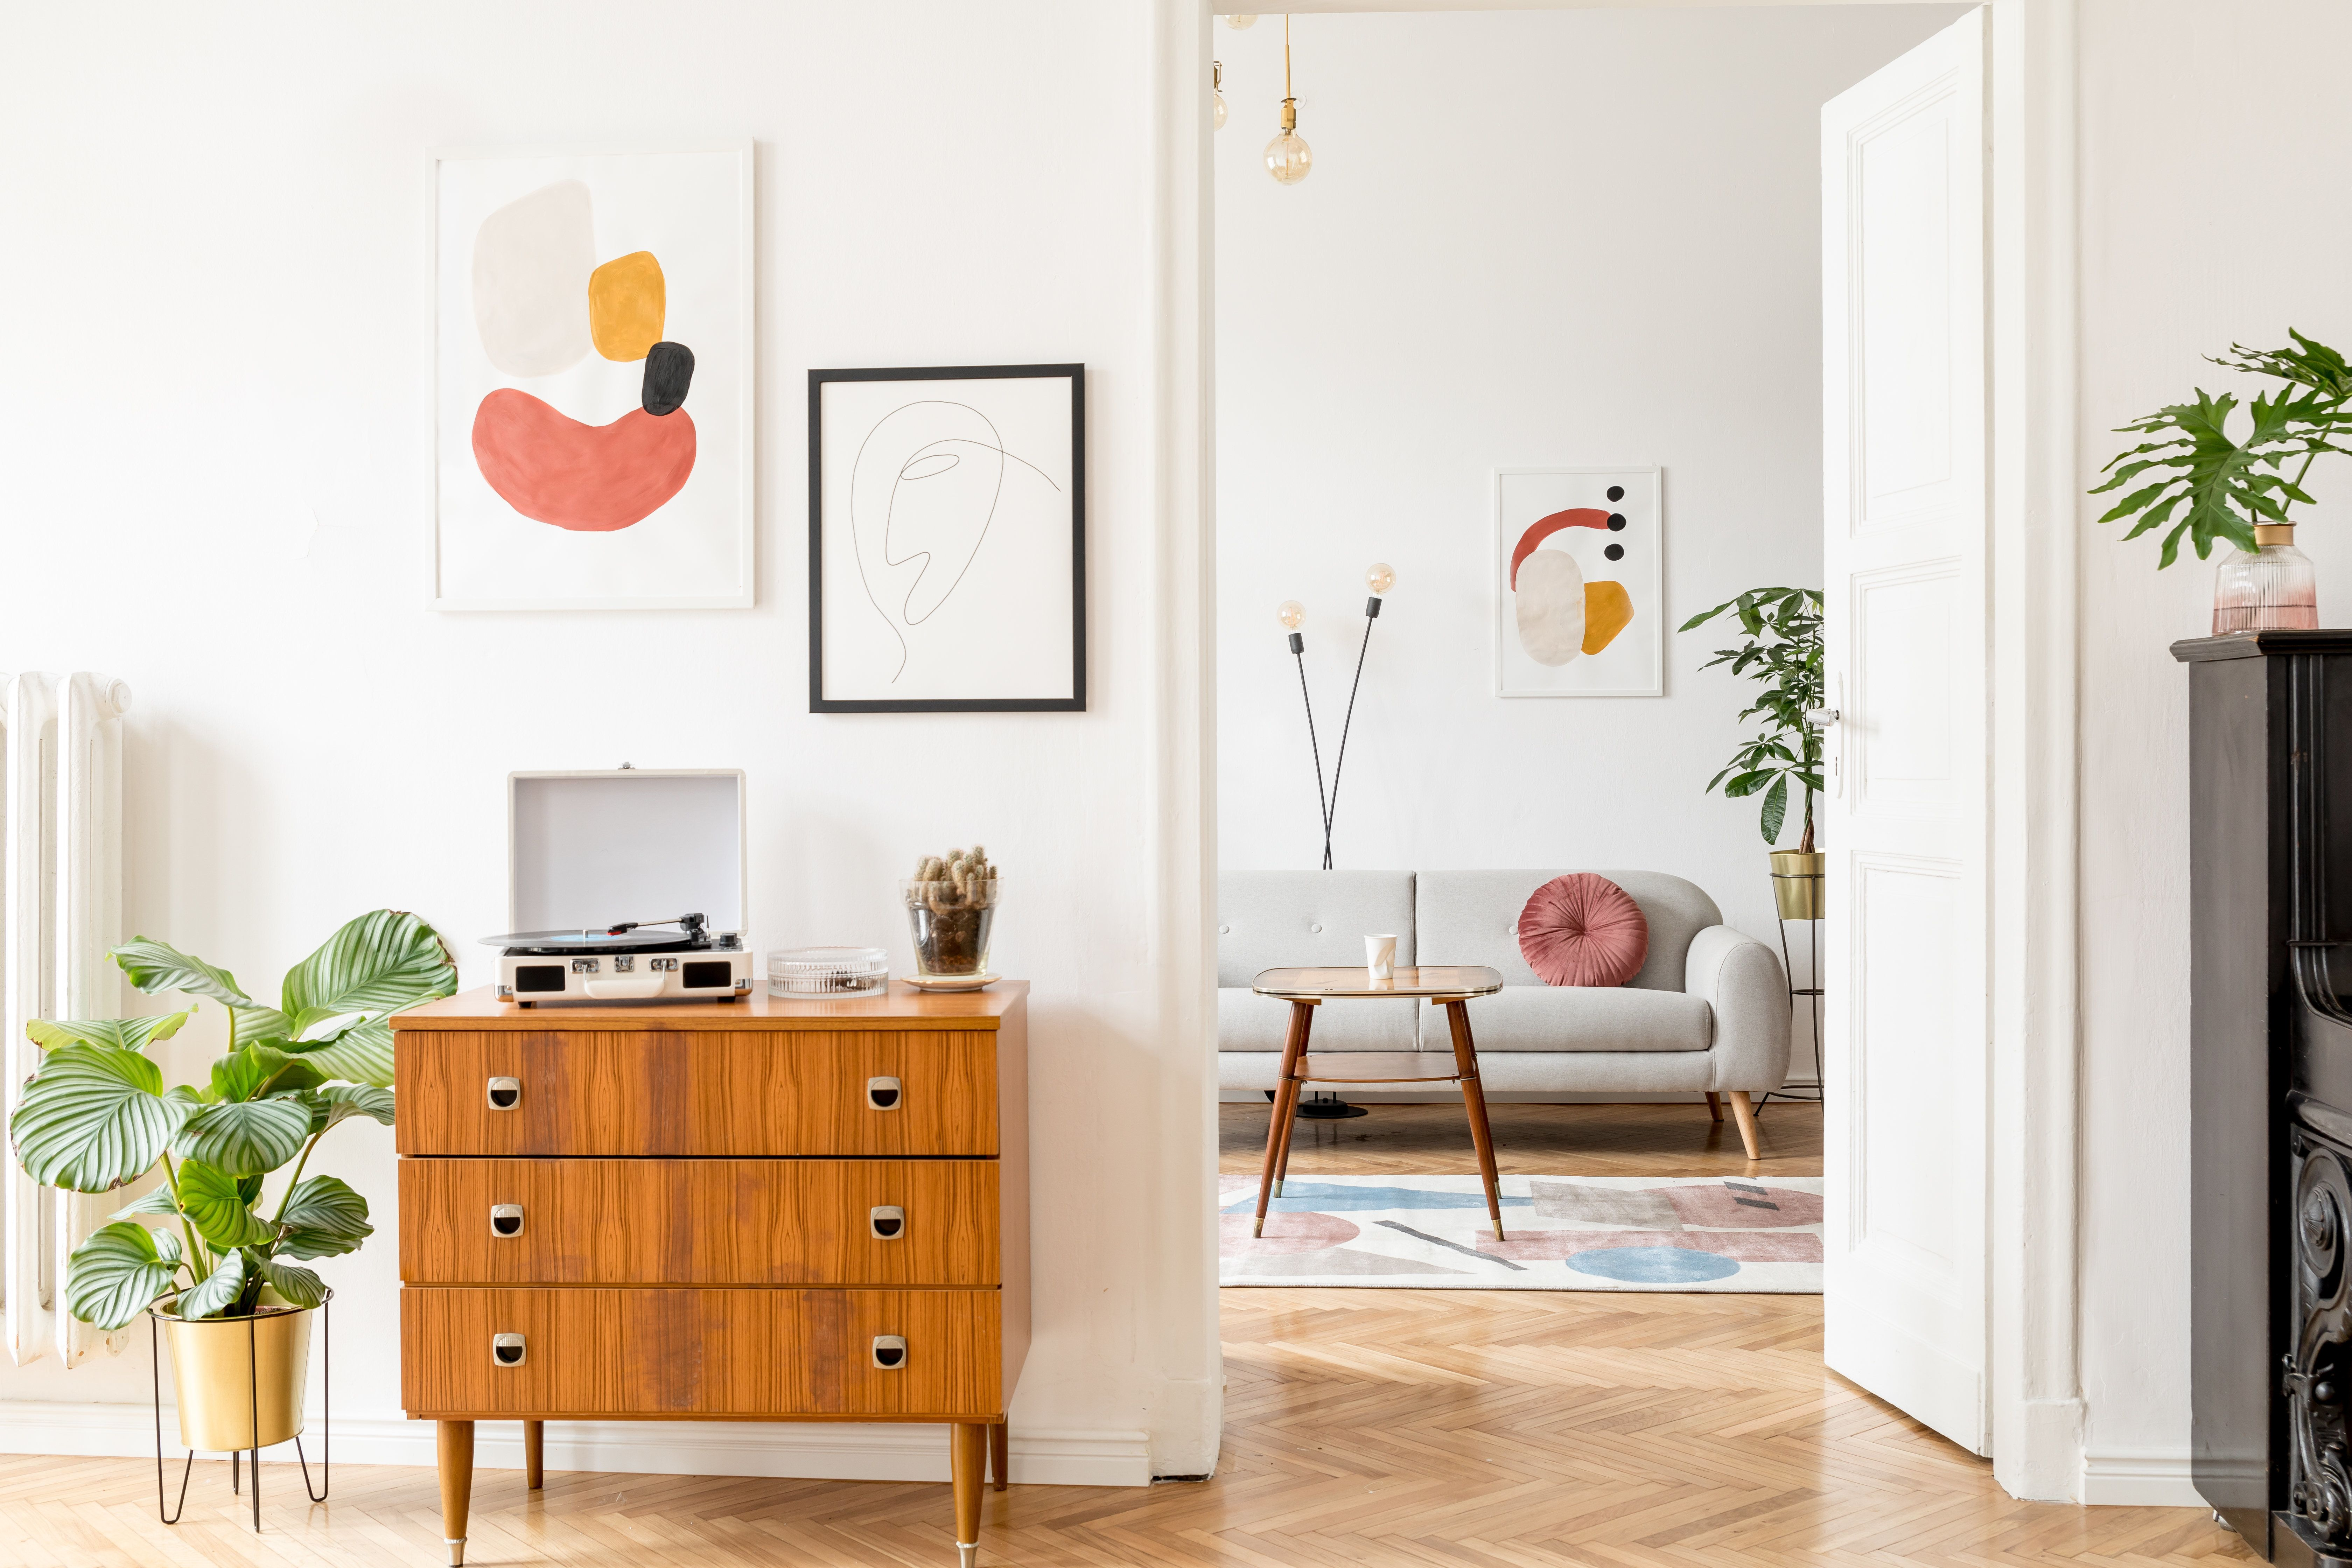 14 Furniture Stores Like West Elm To Buy Mid Century Modern Home Decor |  HuffPost Life